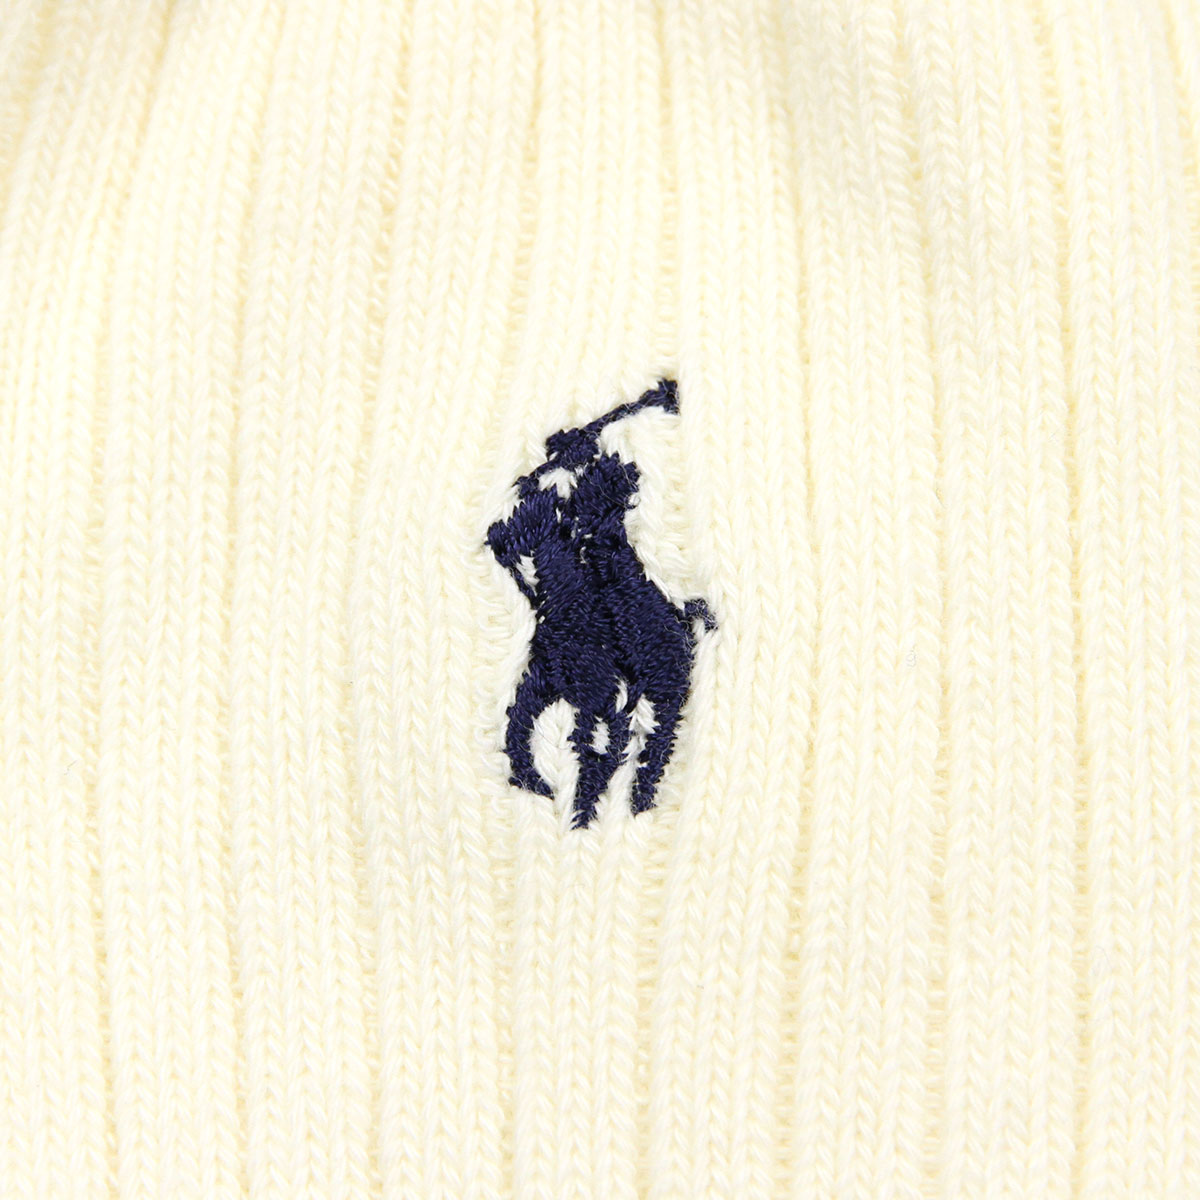 ポロ ラルフローレン POLO RALPH LAUREN 正規品 ソックス COTTON RIB SINGLE SOCK NATURAL 104 - NATURAL A05B B1C C3D D1E E18F